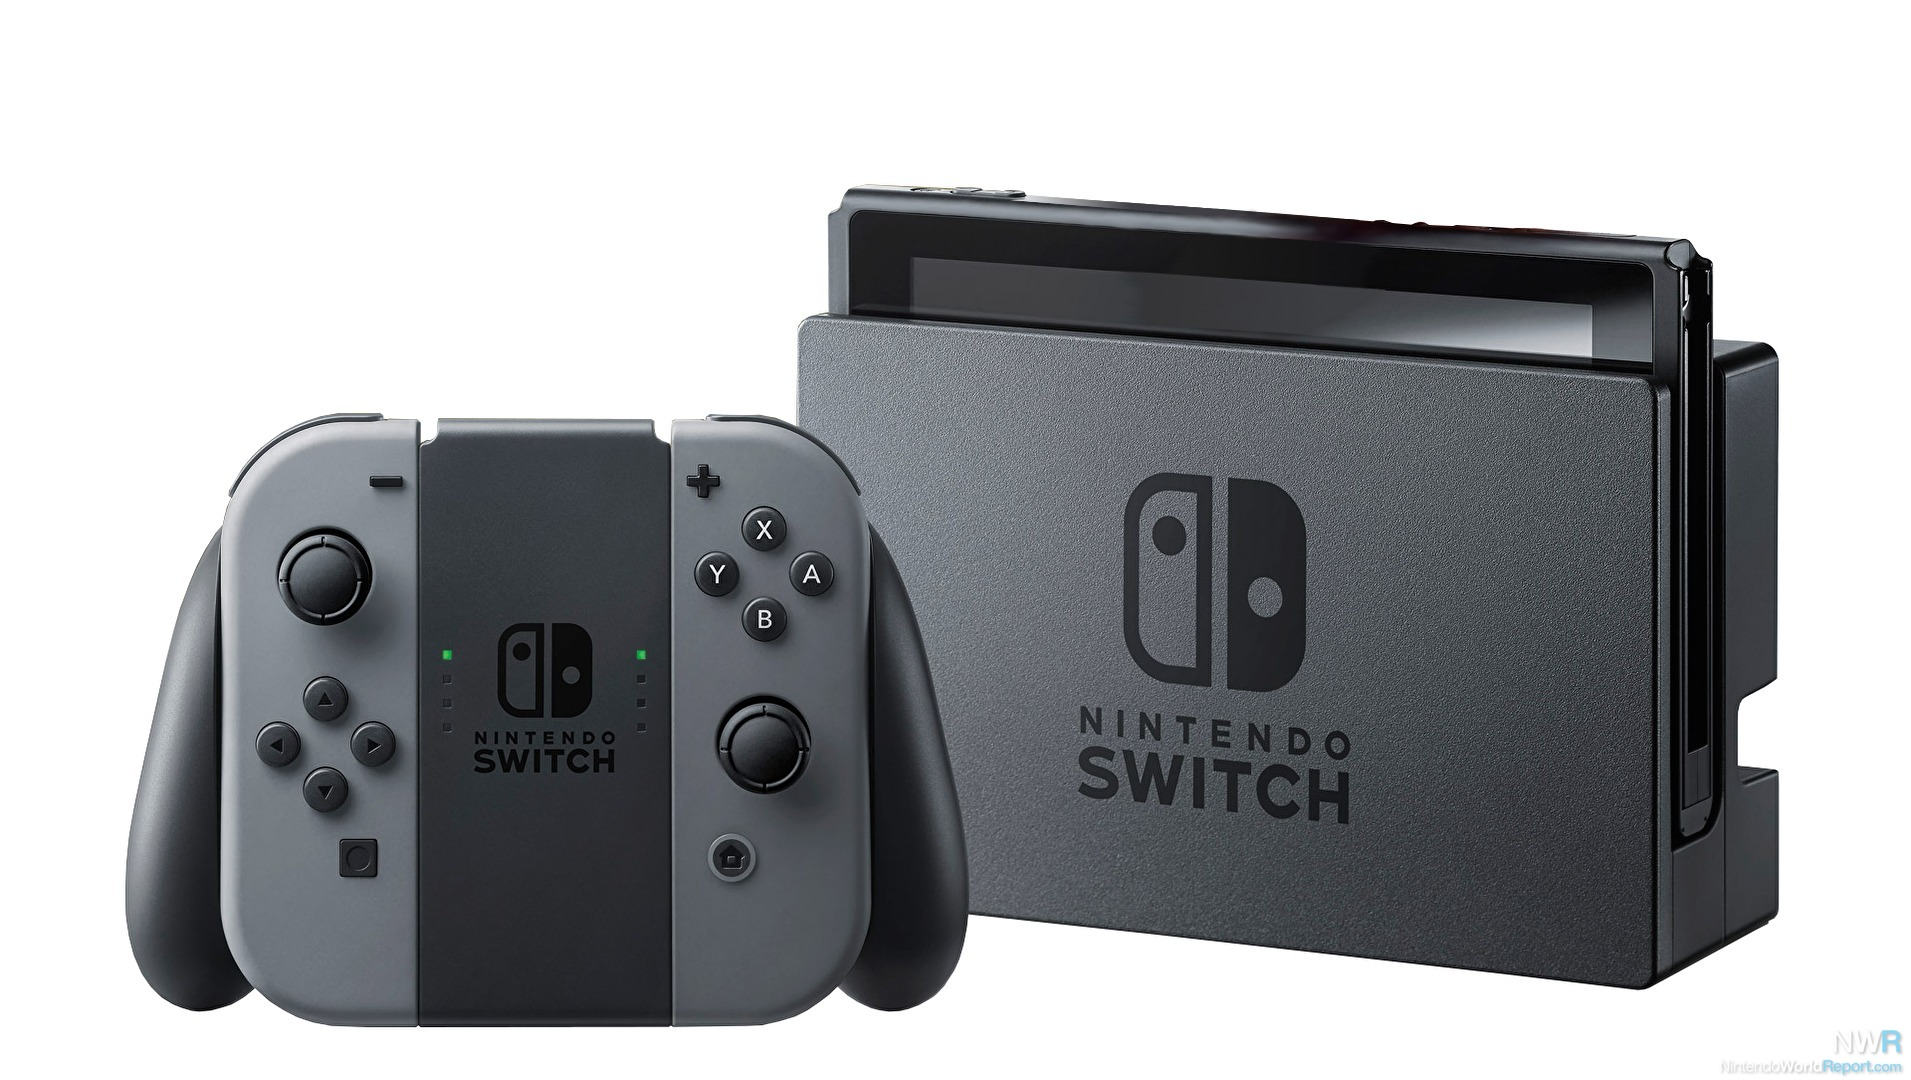 Nintendo Switch Surpasses GameCube, But …